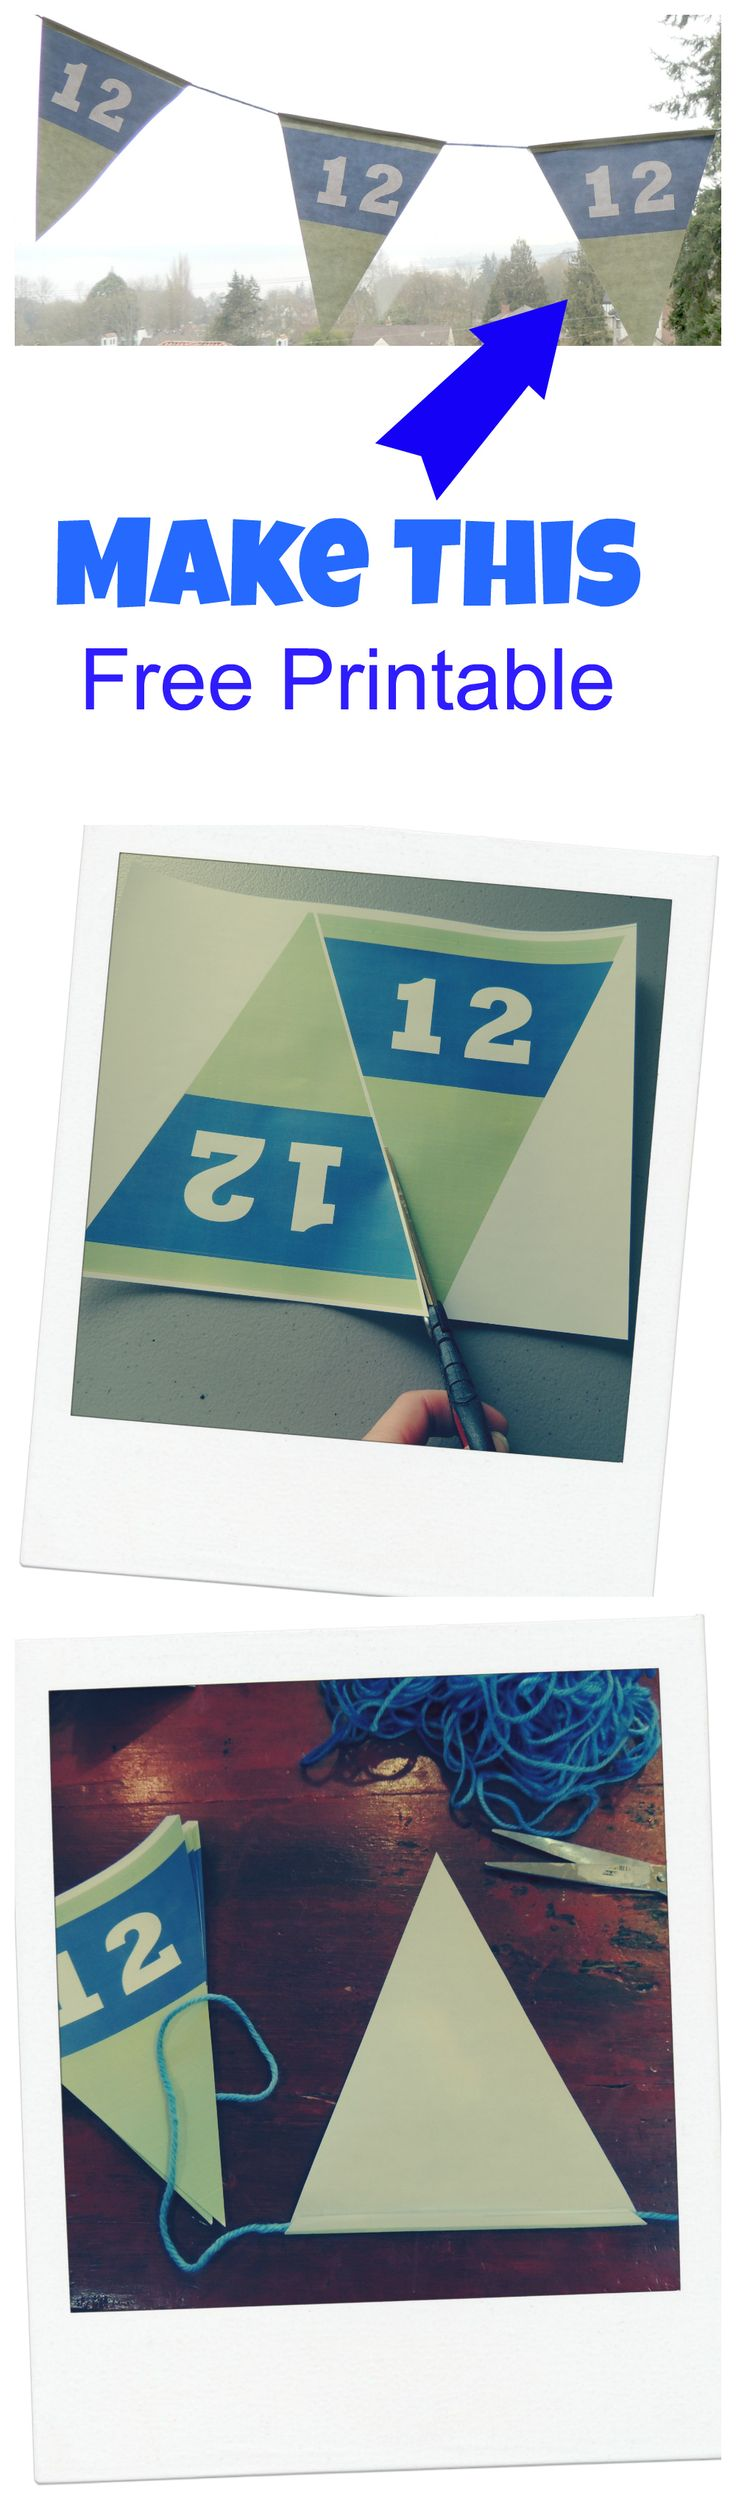 Seahawks 12th Man |Free Printable